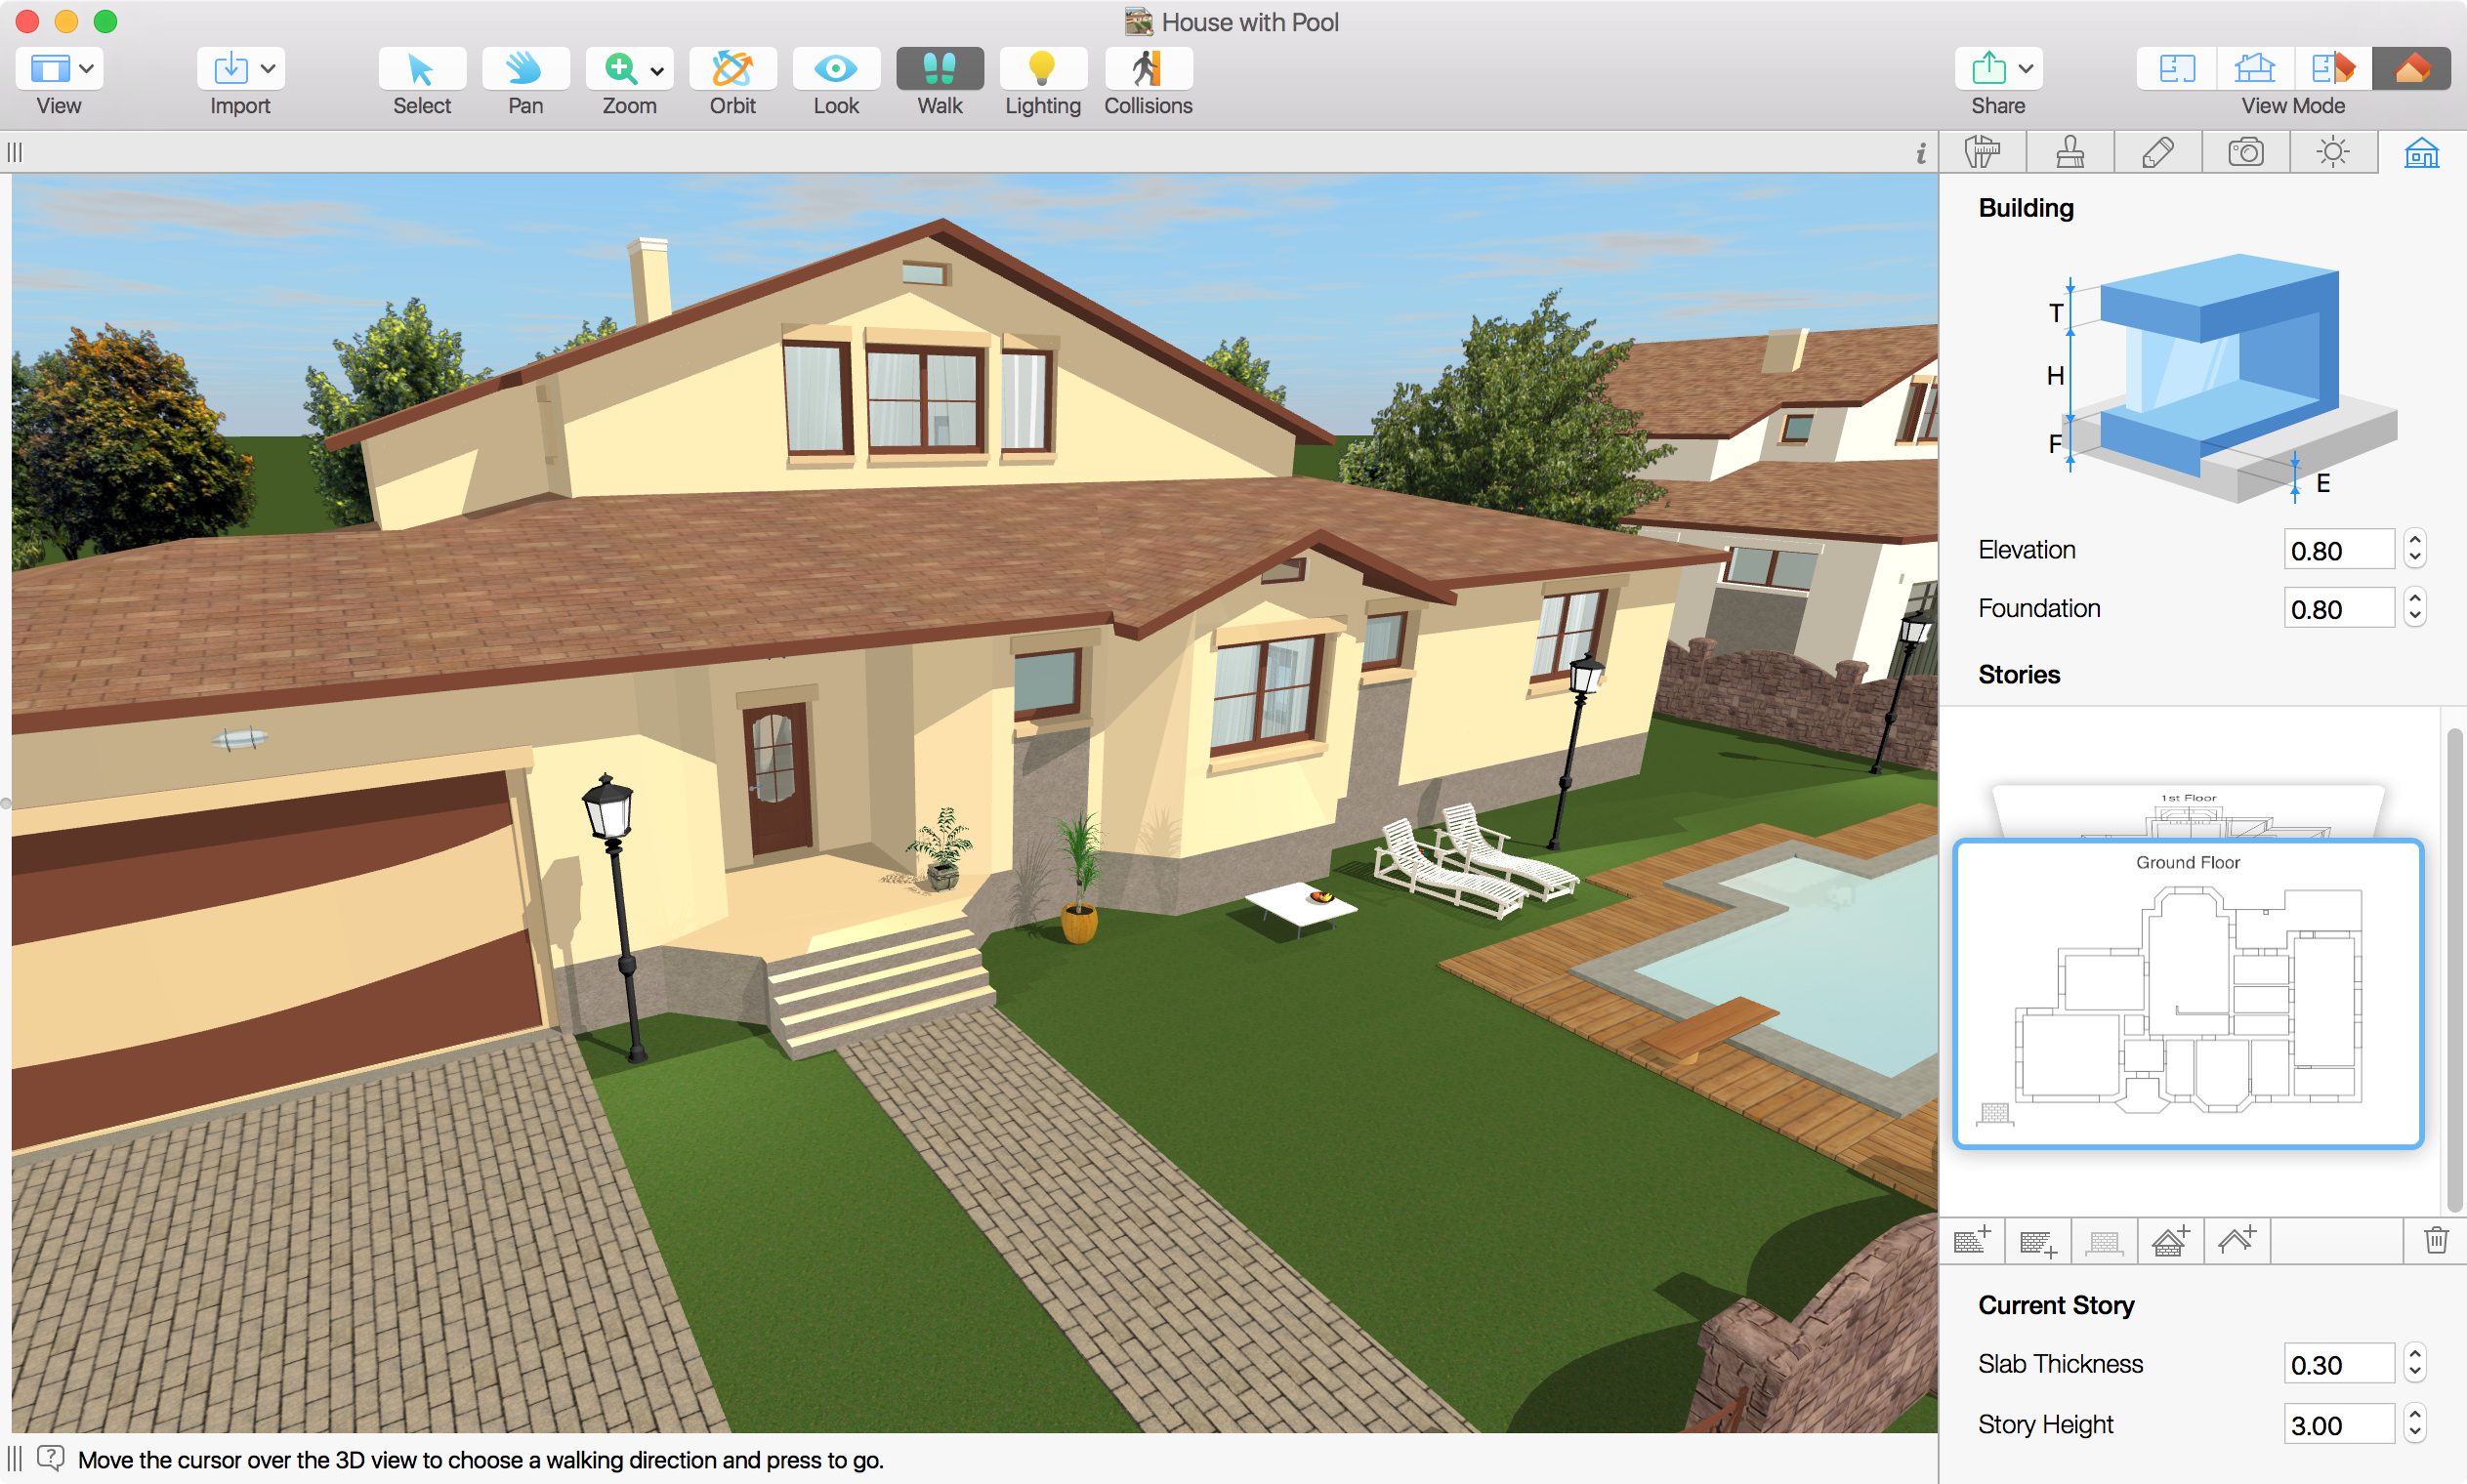 Live Home 3D Demo - Live Home 3D outside the house